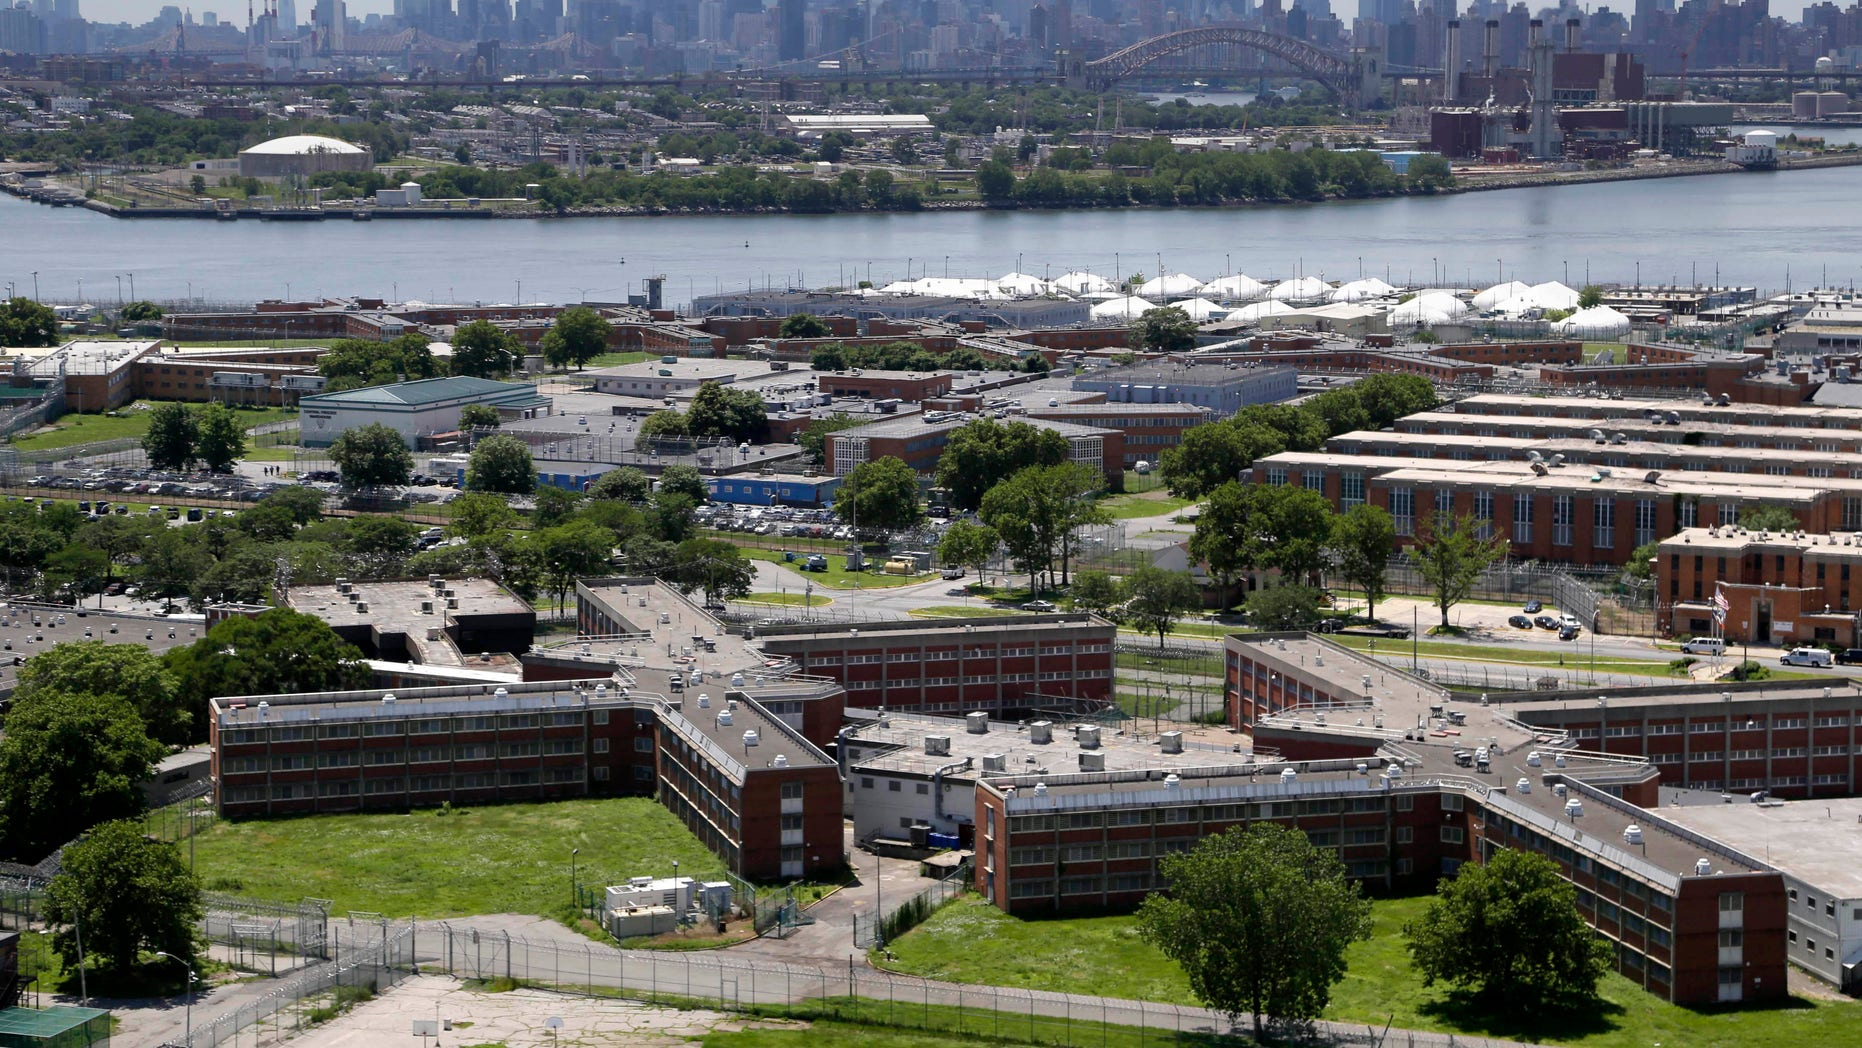 June 20, 2014:  The sprawling Rikers Island jail complex stands in the foreground with the New York skyline in the climbing into the horizon